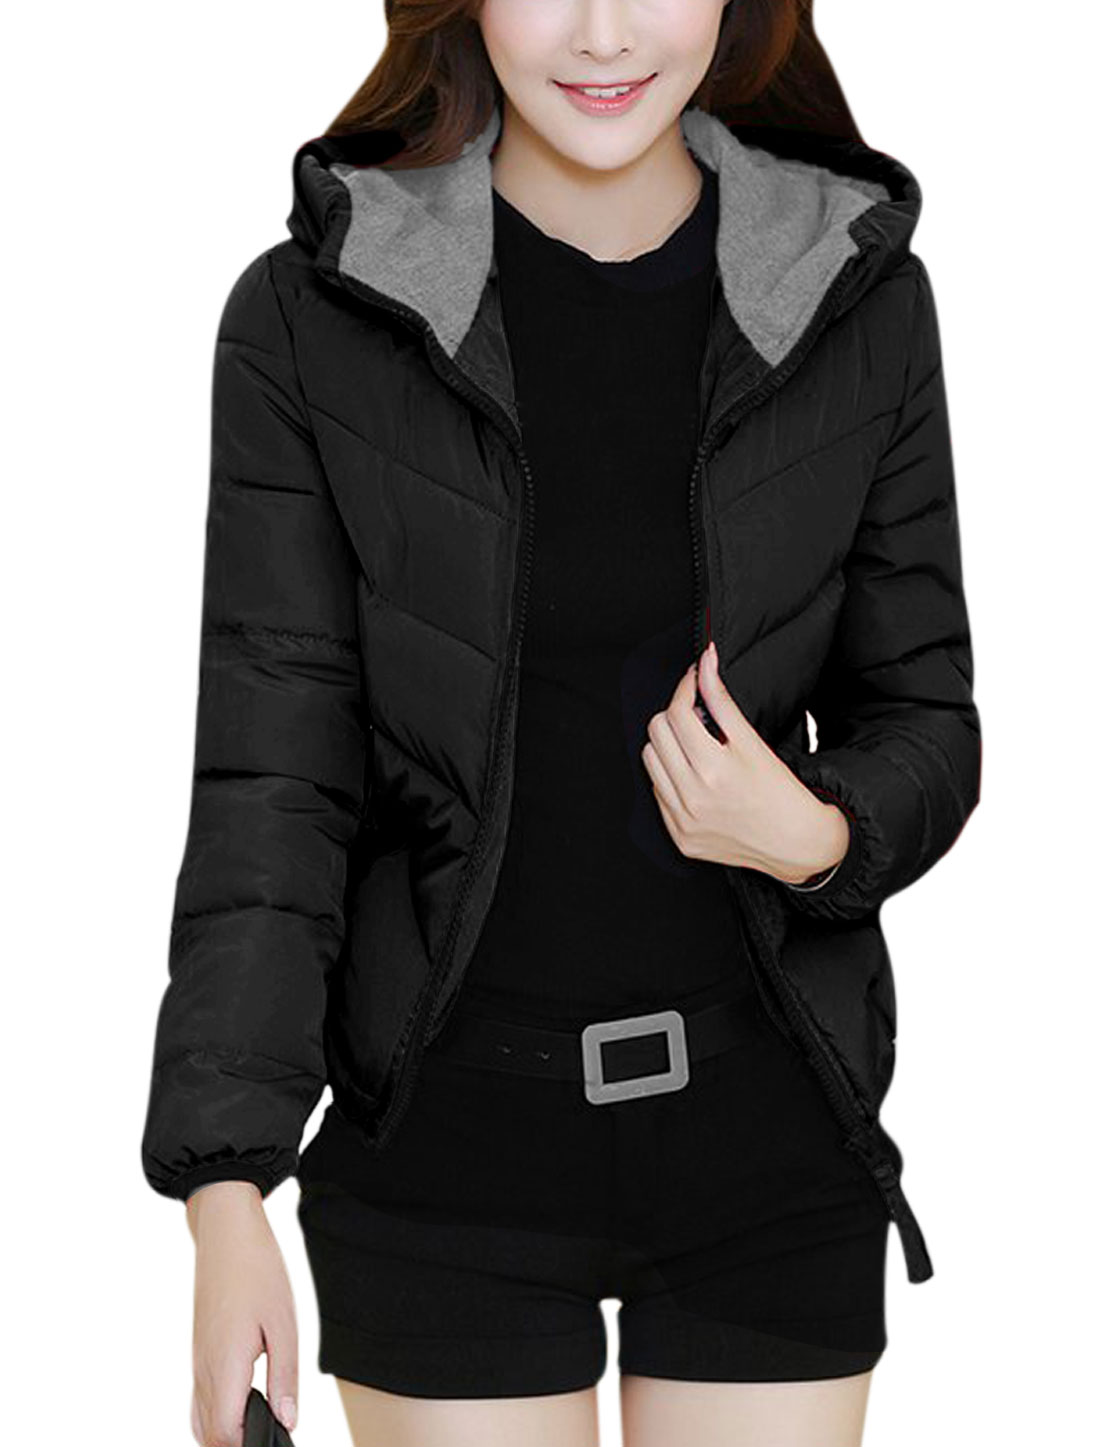 Lady Zipper Closure Double Pockets Hooded Down Jacket Black M